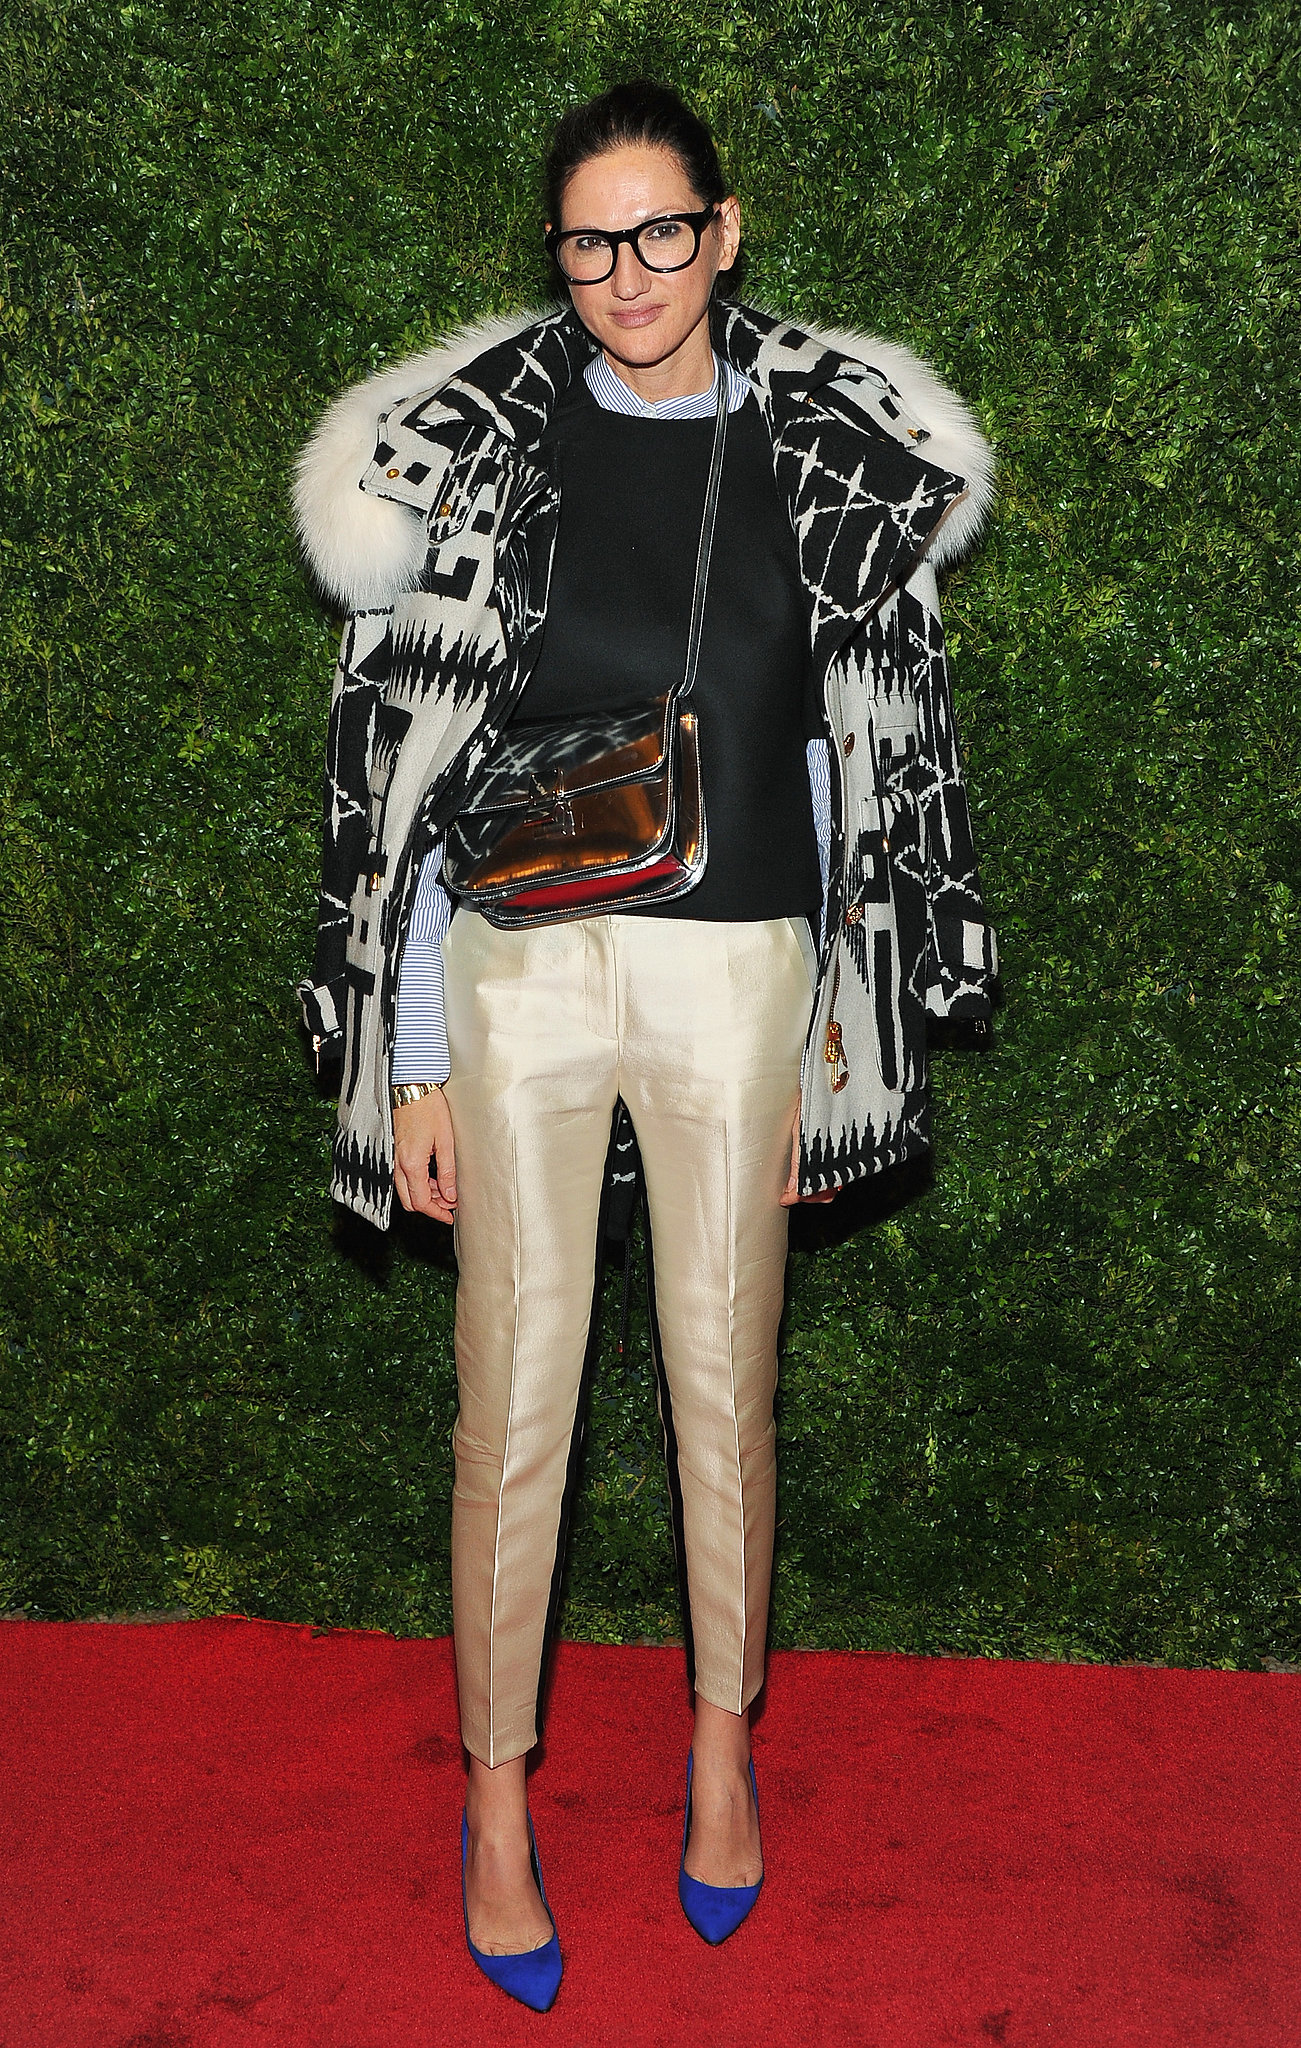 For a movie screening, Lyons paired all kinds of statement pieces together and made it work. Gold pants plus cobalt heels and a fur-trimmed parka? Yes!